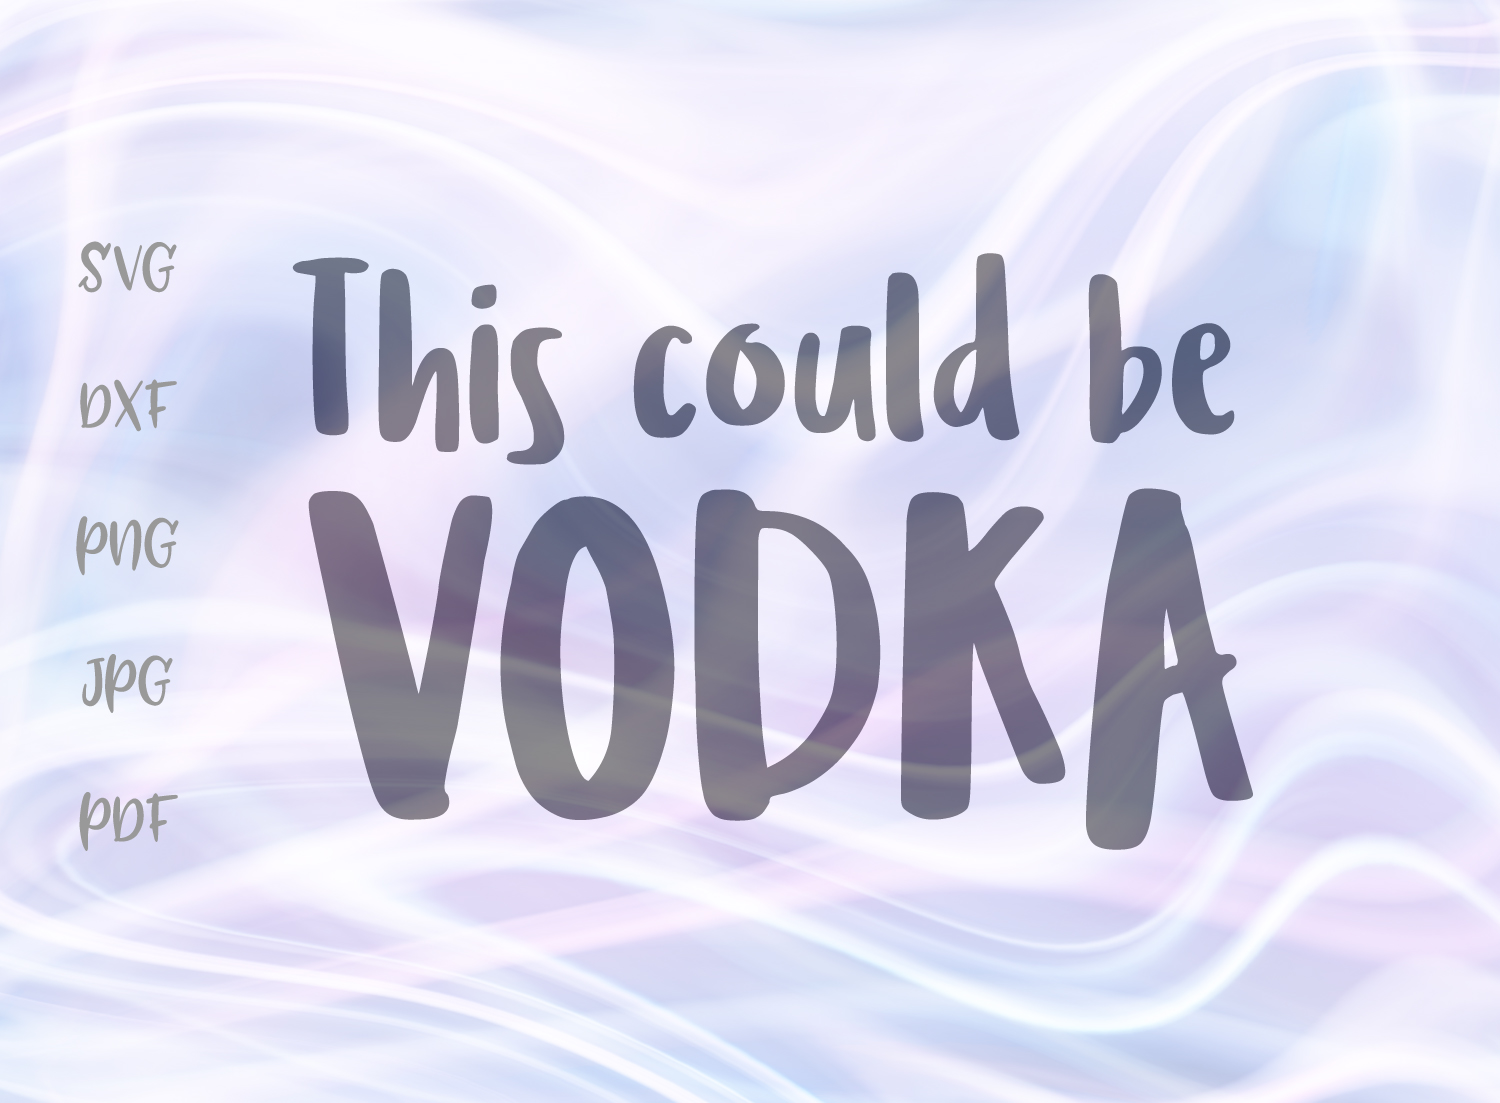 Download Free This Could Be Vodka Svg Graphic By Digitals By Hanna Creative for Cricut Explore, Silhouette and other cutting machines.